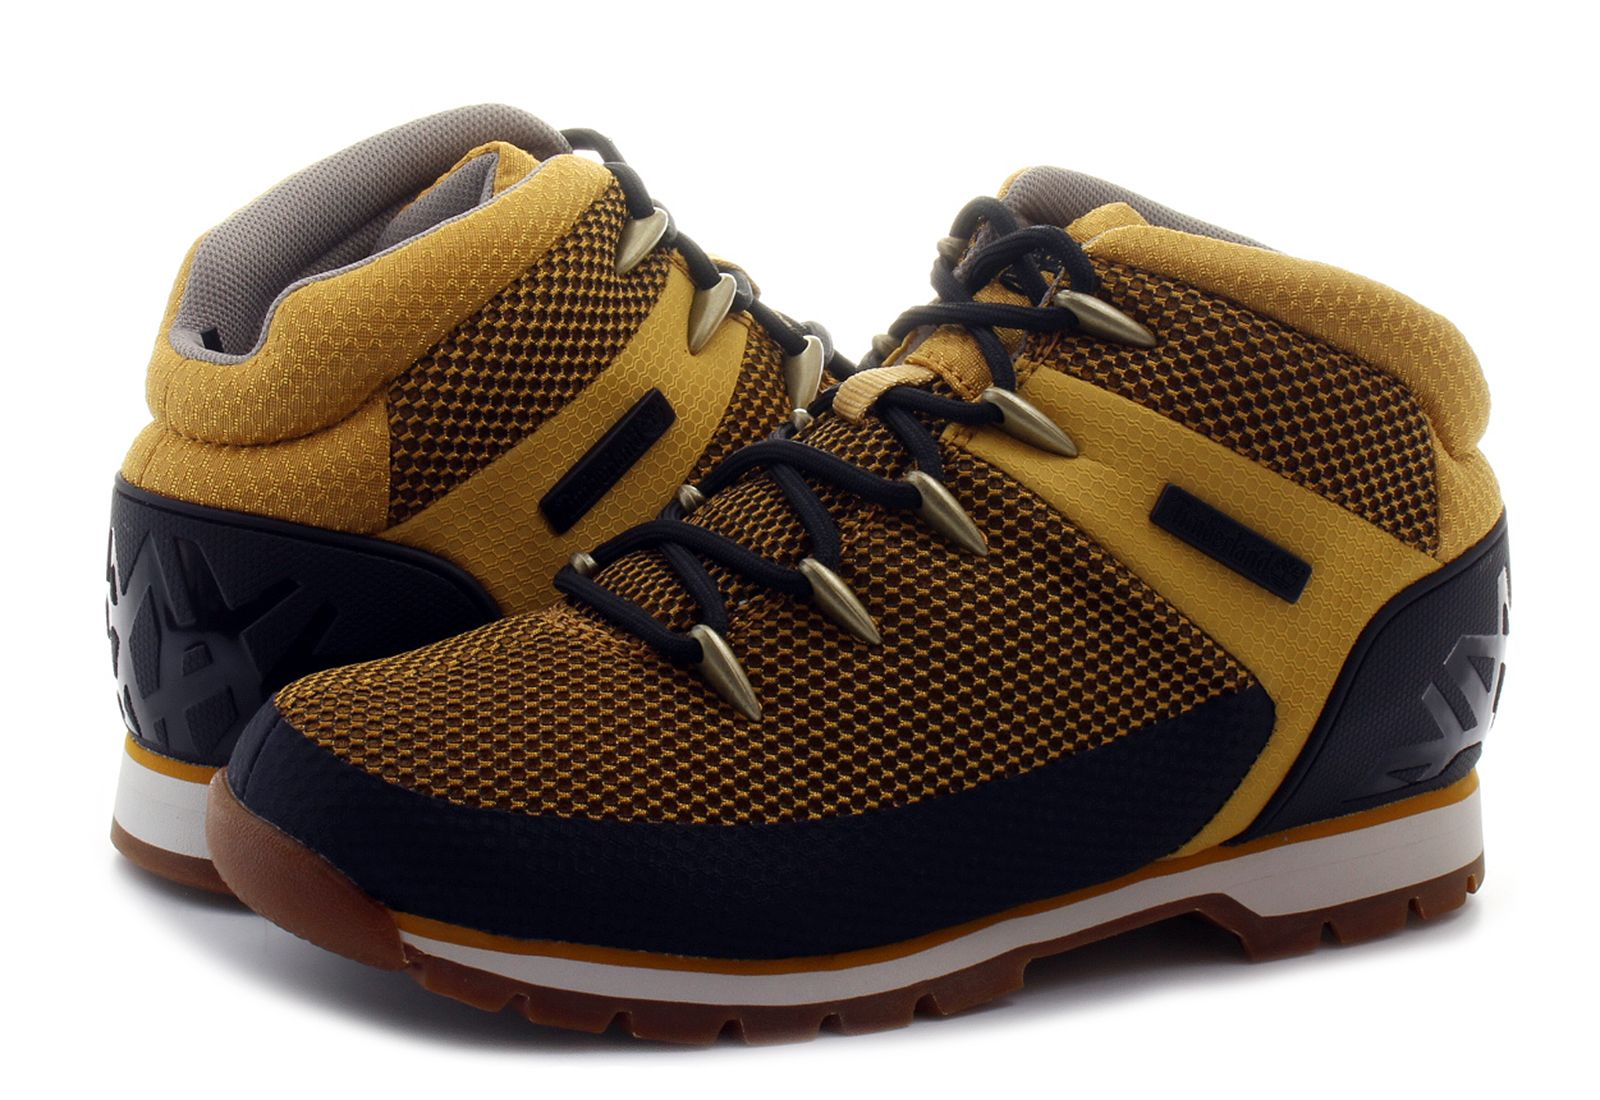 Timberland Bakancs - Euro Sprint Fabric - A1G5G-whe - Office Shoes ... b89920a6b4